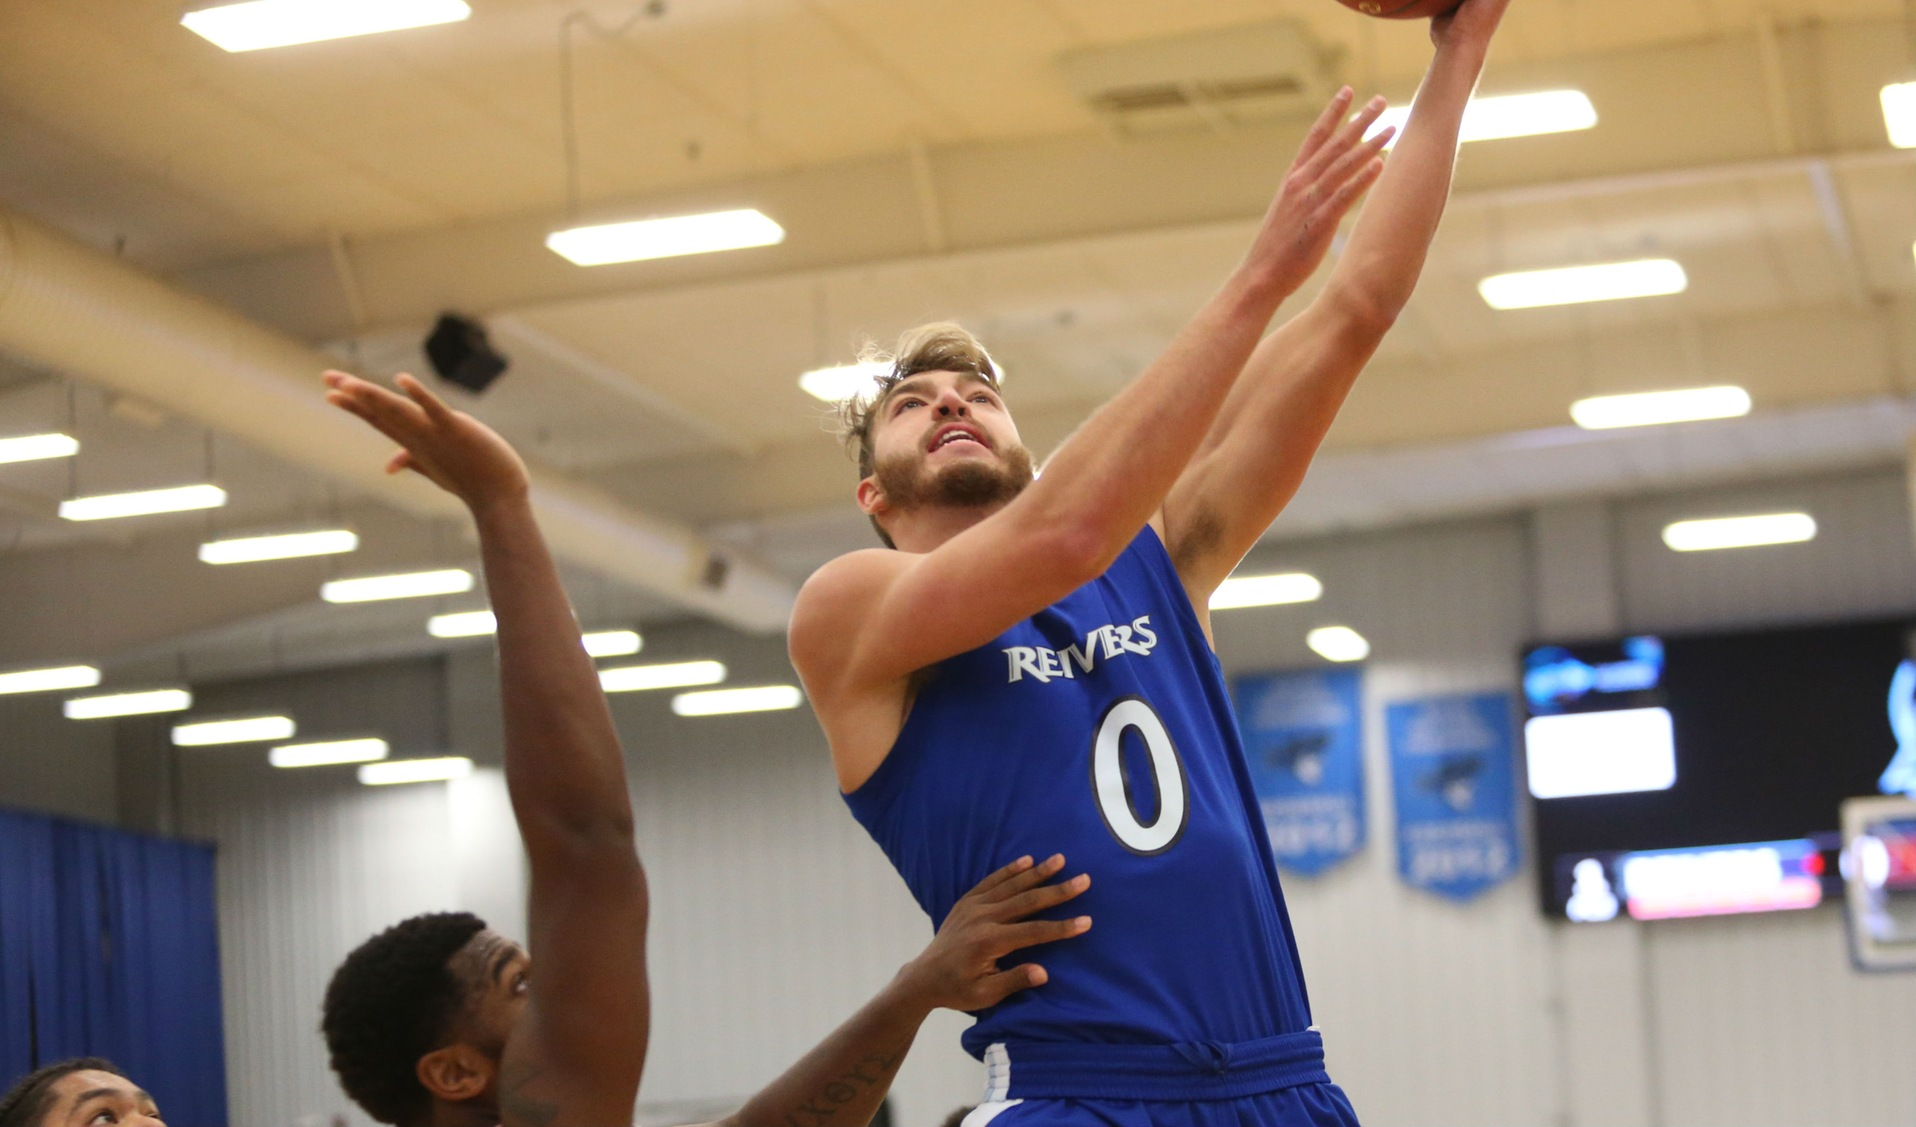 Parker Hazen's 17 point - 8 rebound effort was not enough as Iowa Western fell at Southeastern in the ICCAC Region XI Semi-Finals Wednesday evening (2/27/19).